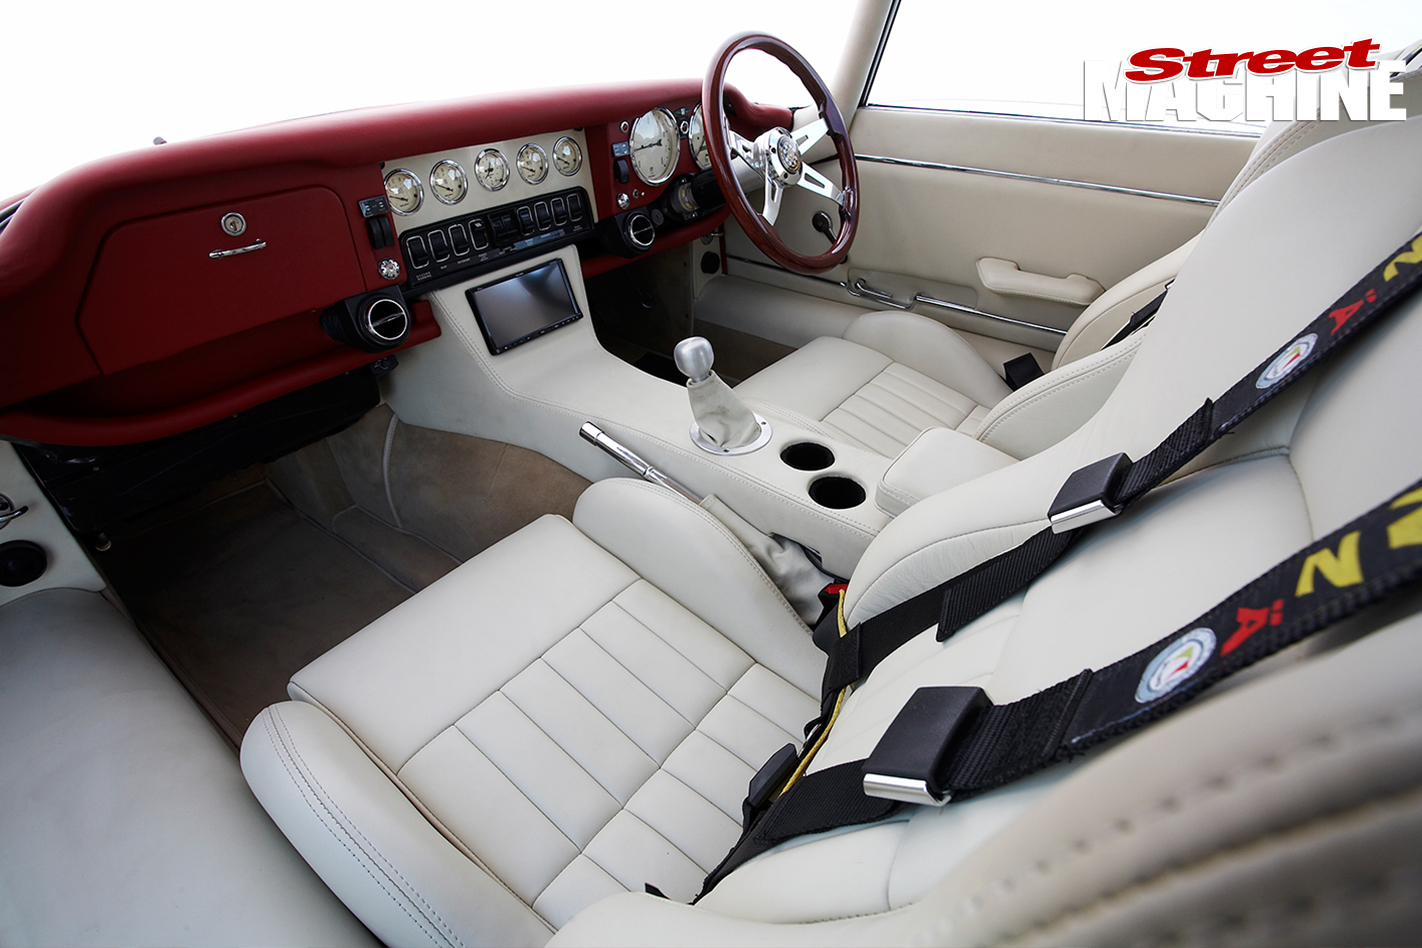 E-type -Jaguar -interior -passenger